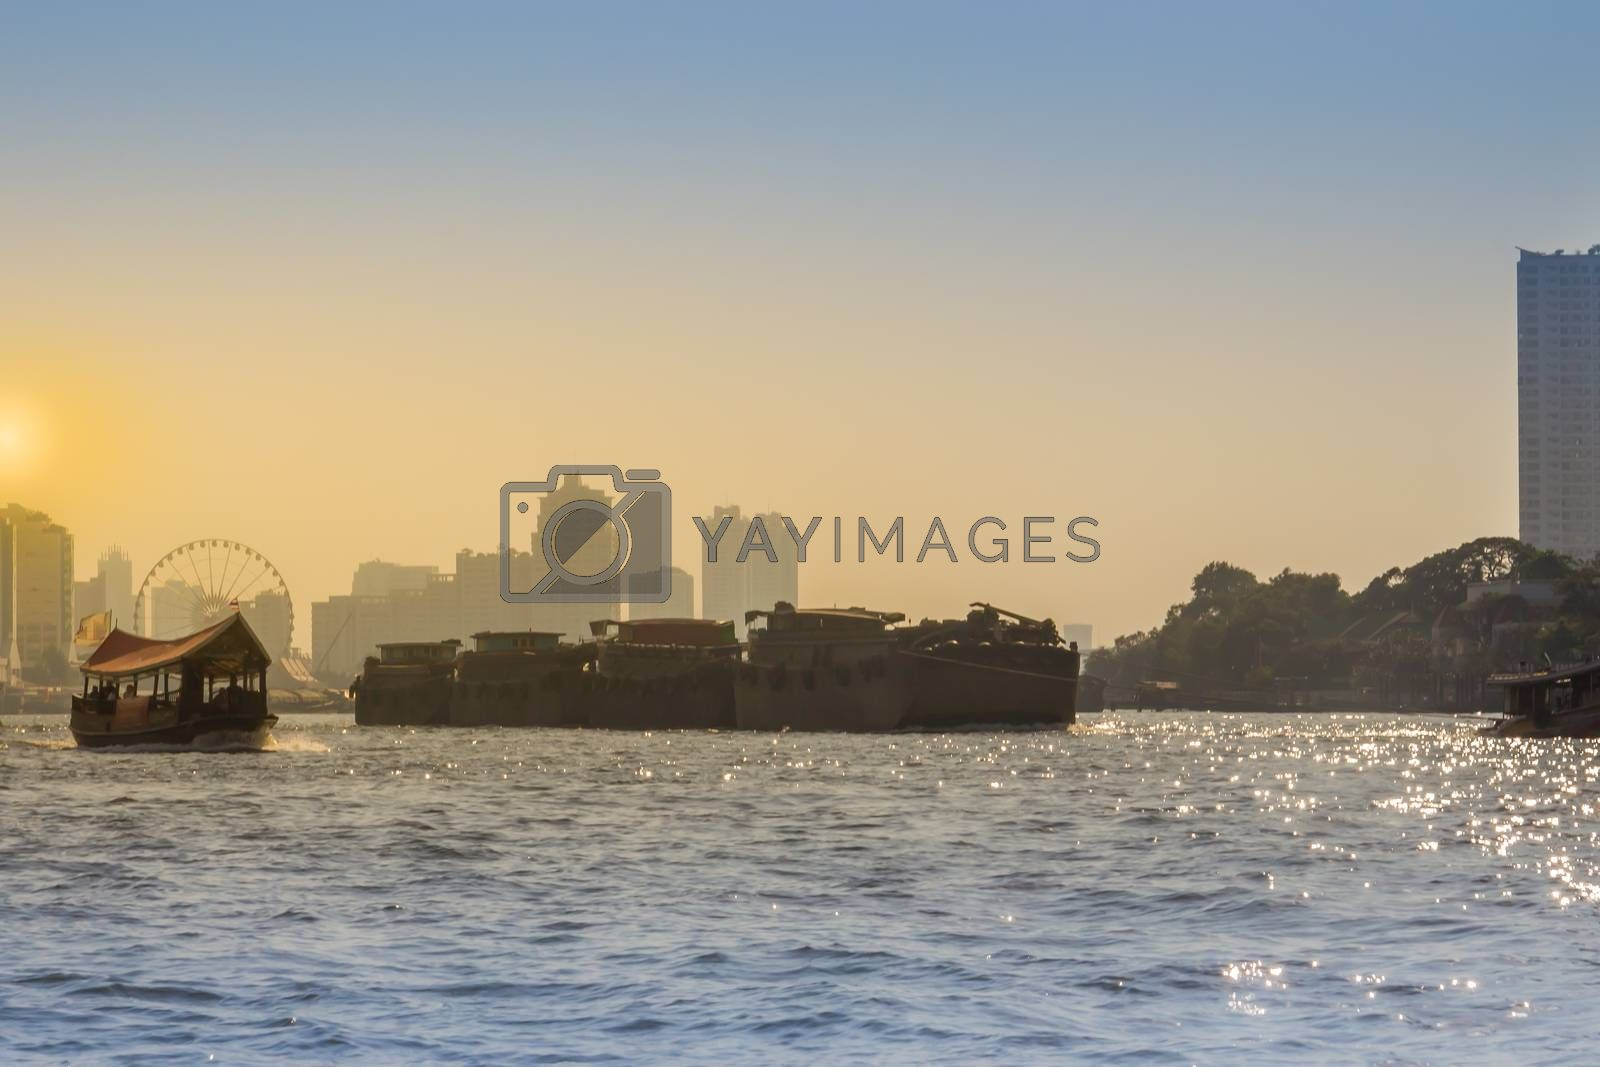 Riverfront view of tug boat drags cargo barge on Chao Phraya river in Bangkok, Thailand.